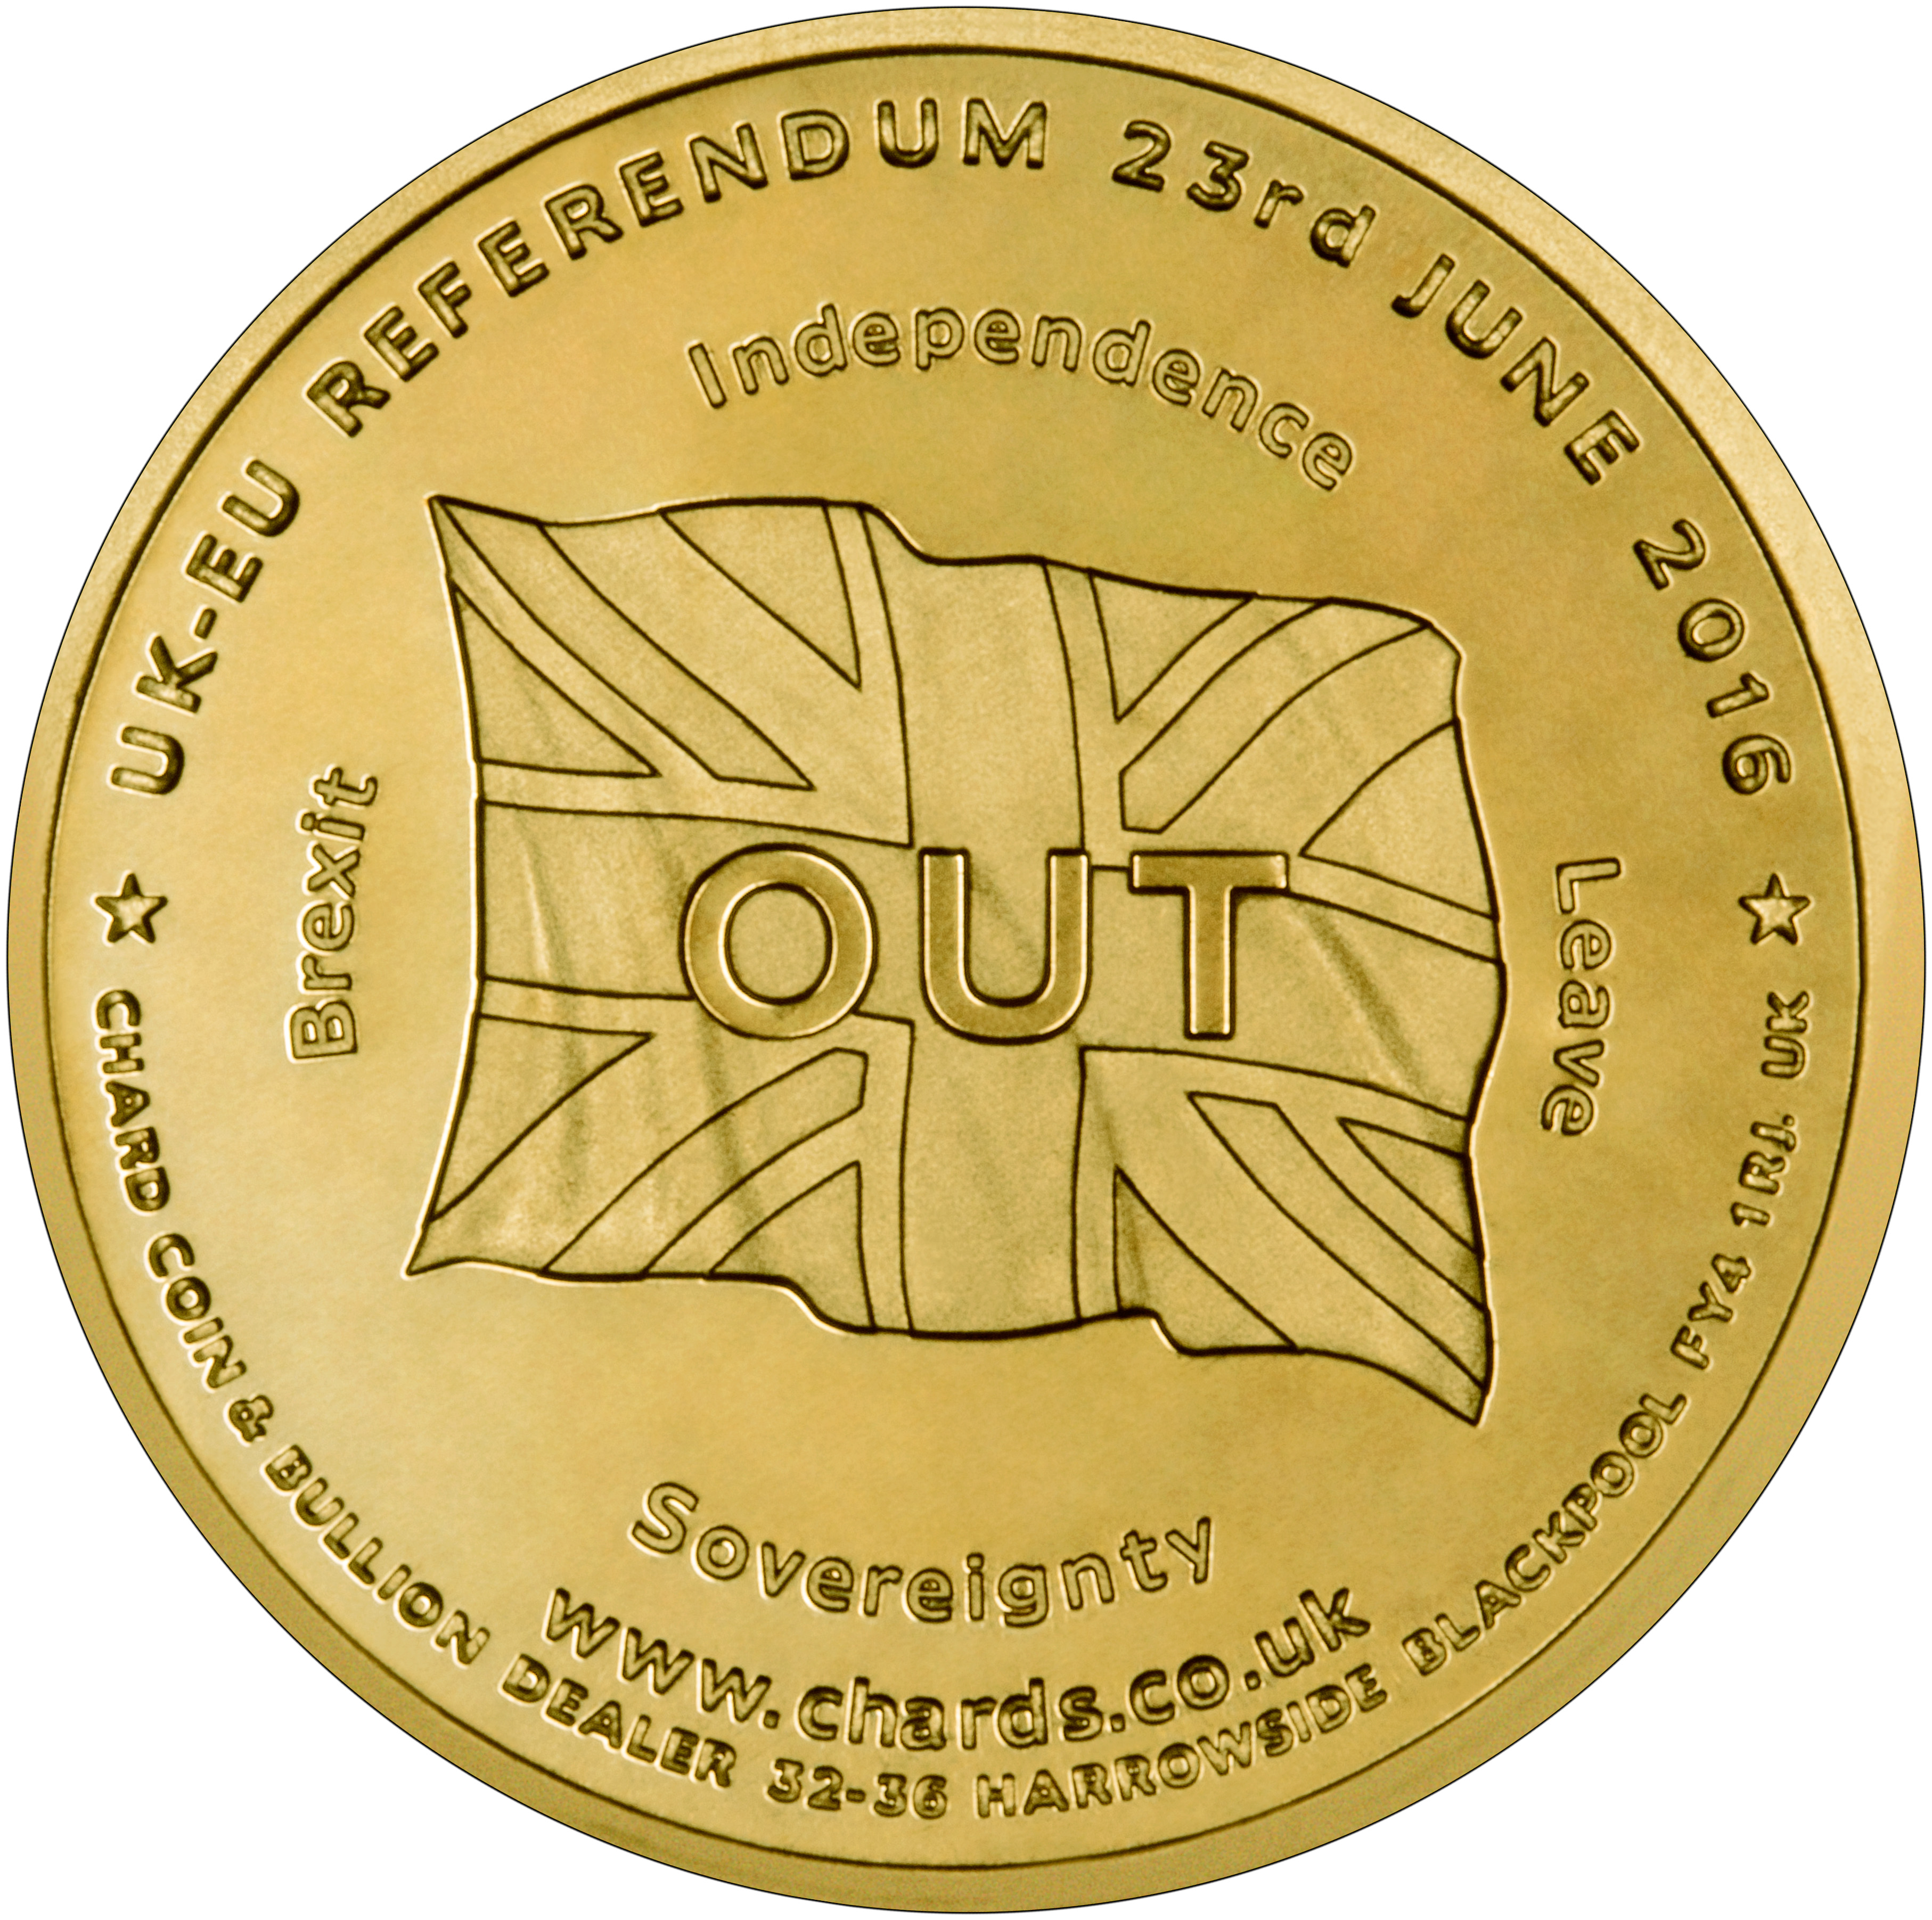 2016 In Out UK EU Referedum Medallion Reverse